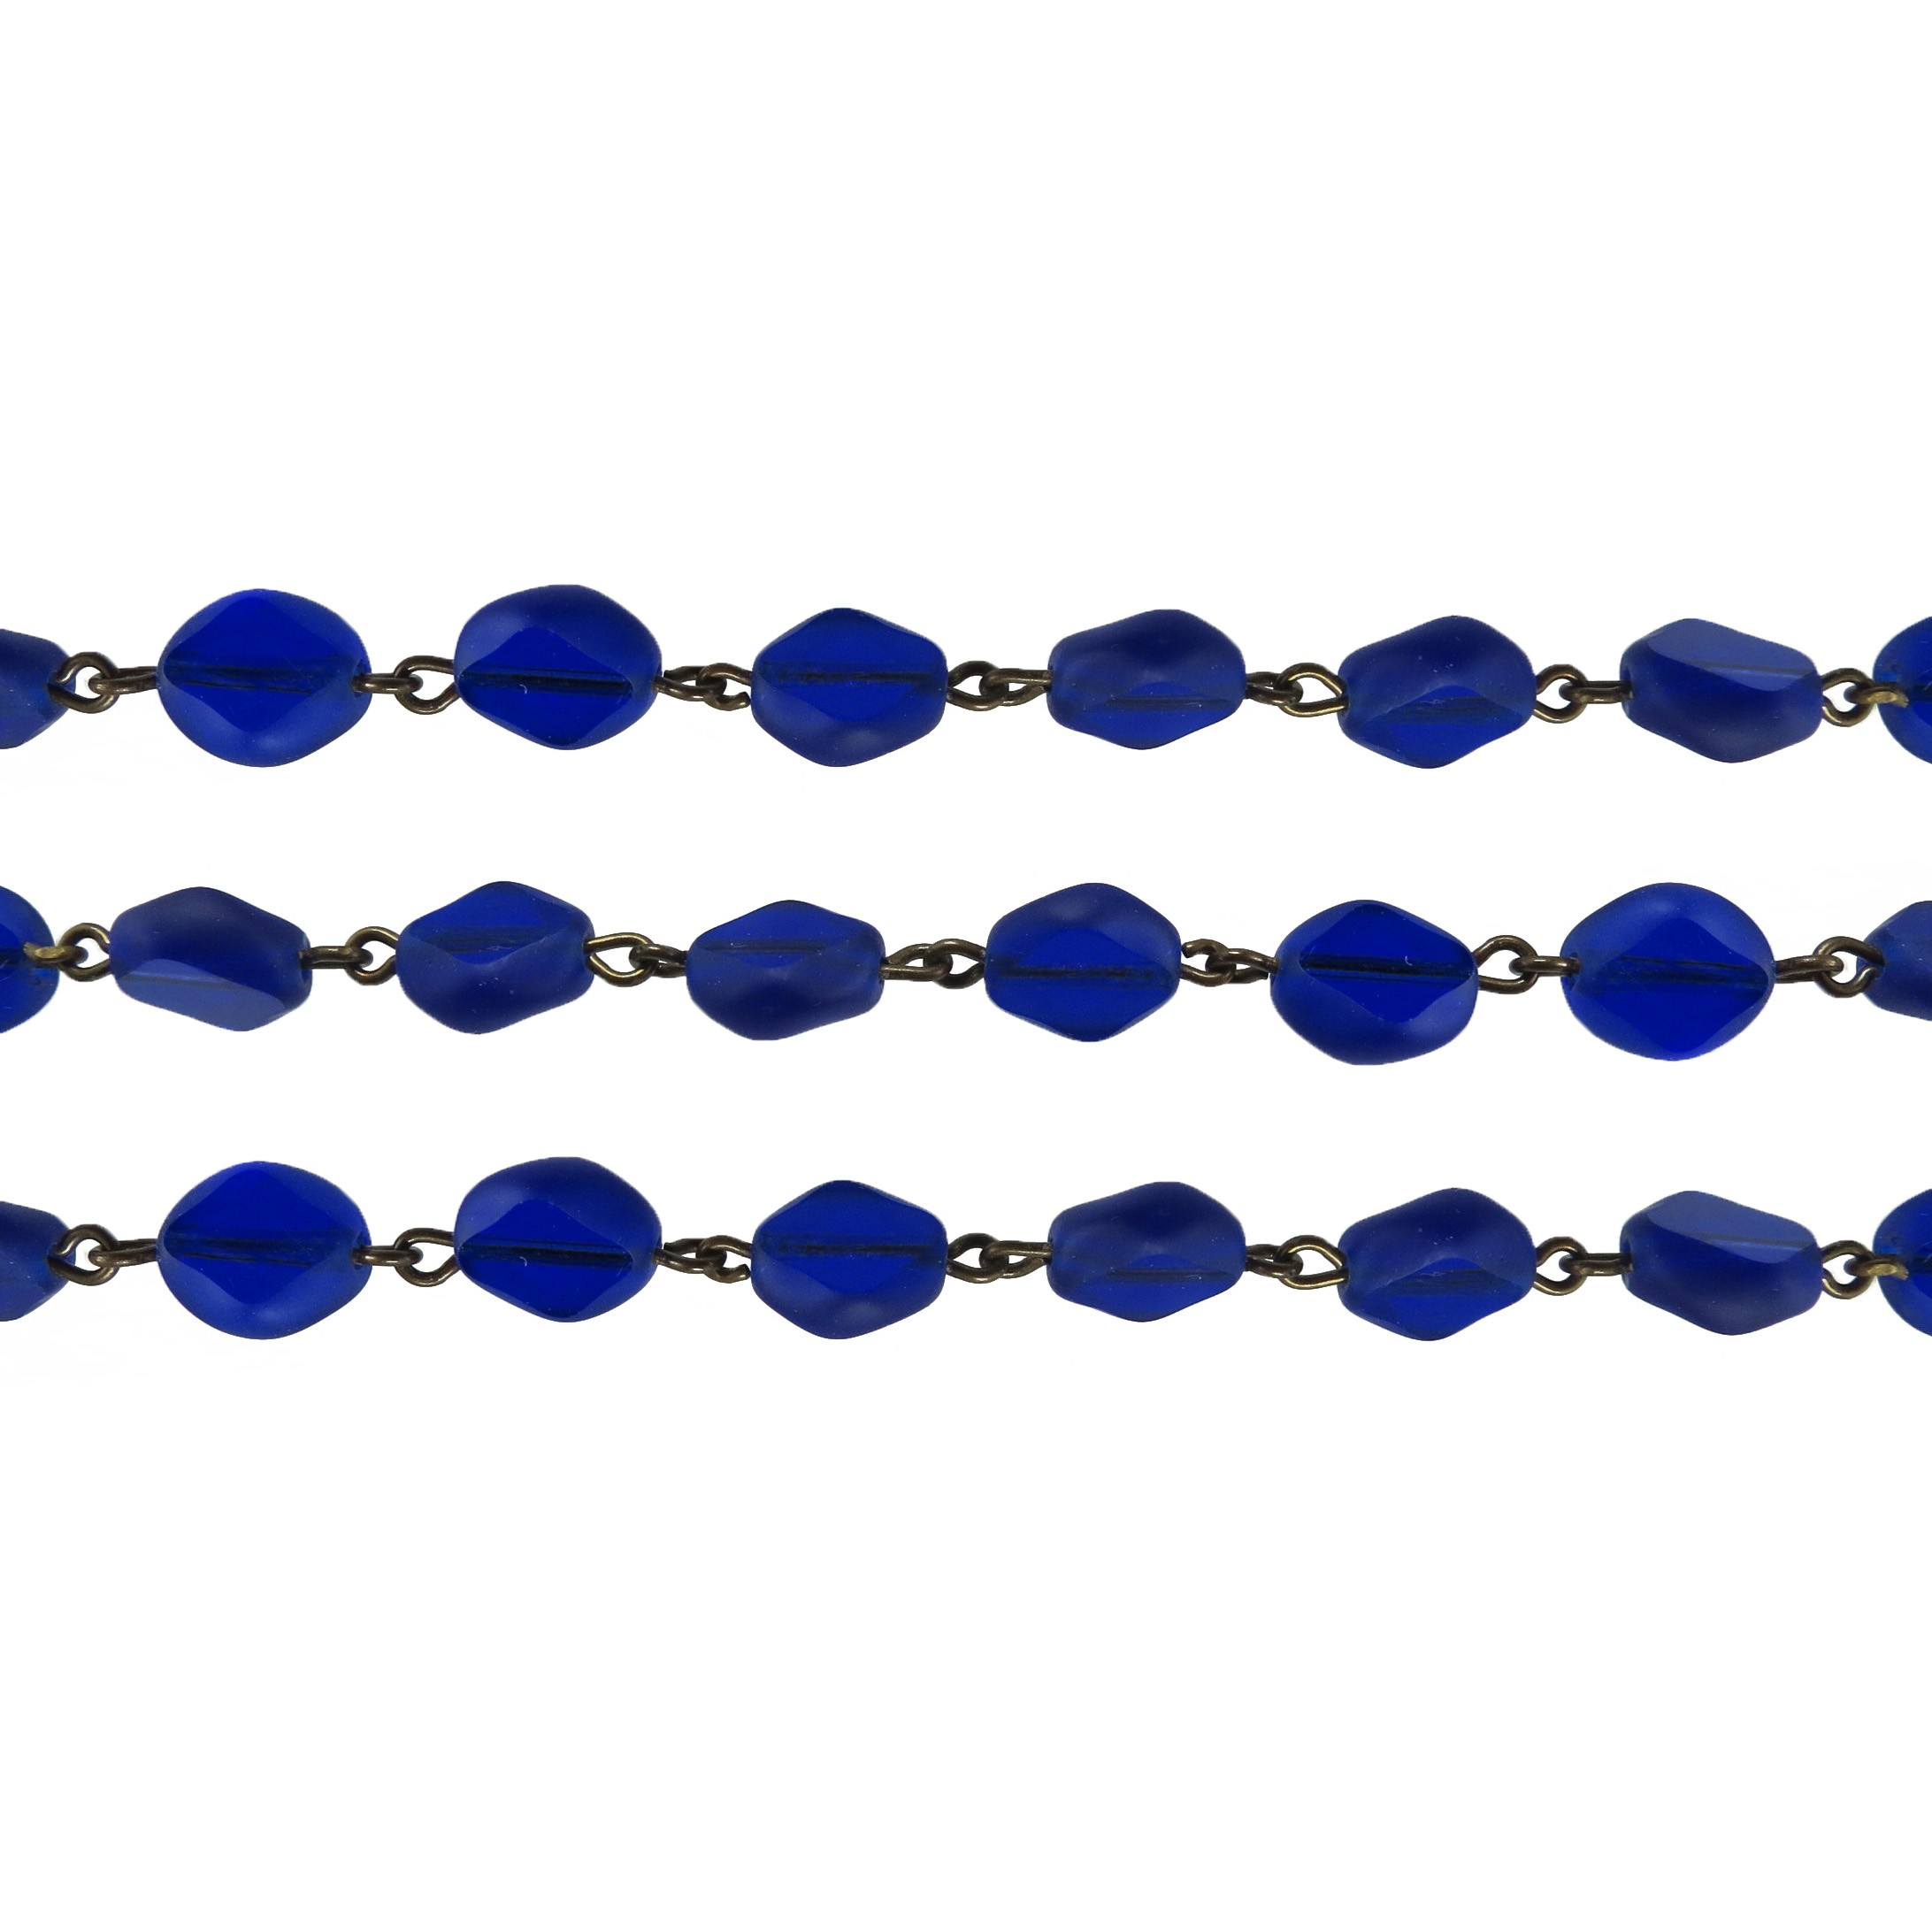 Czech Linked Rosary Chain, 9mm Cobalt Blue Table Cut Diamond Oval Bead, Brass Linked Chain, (Sold by the Meter)